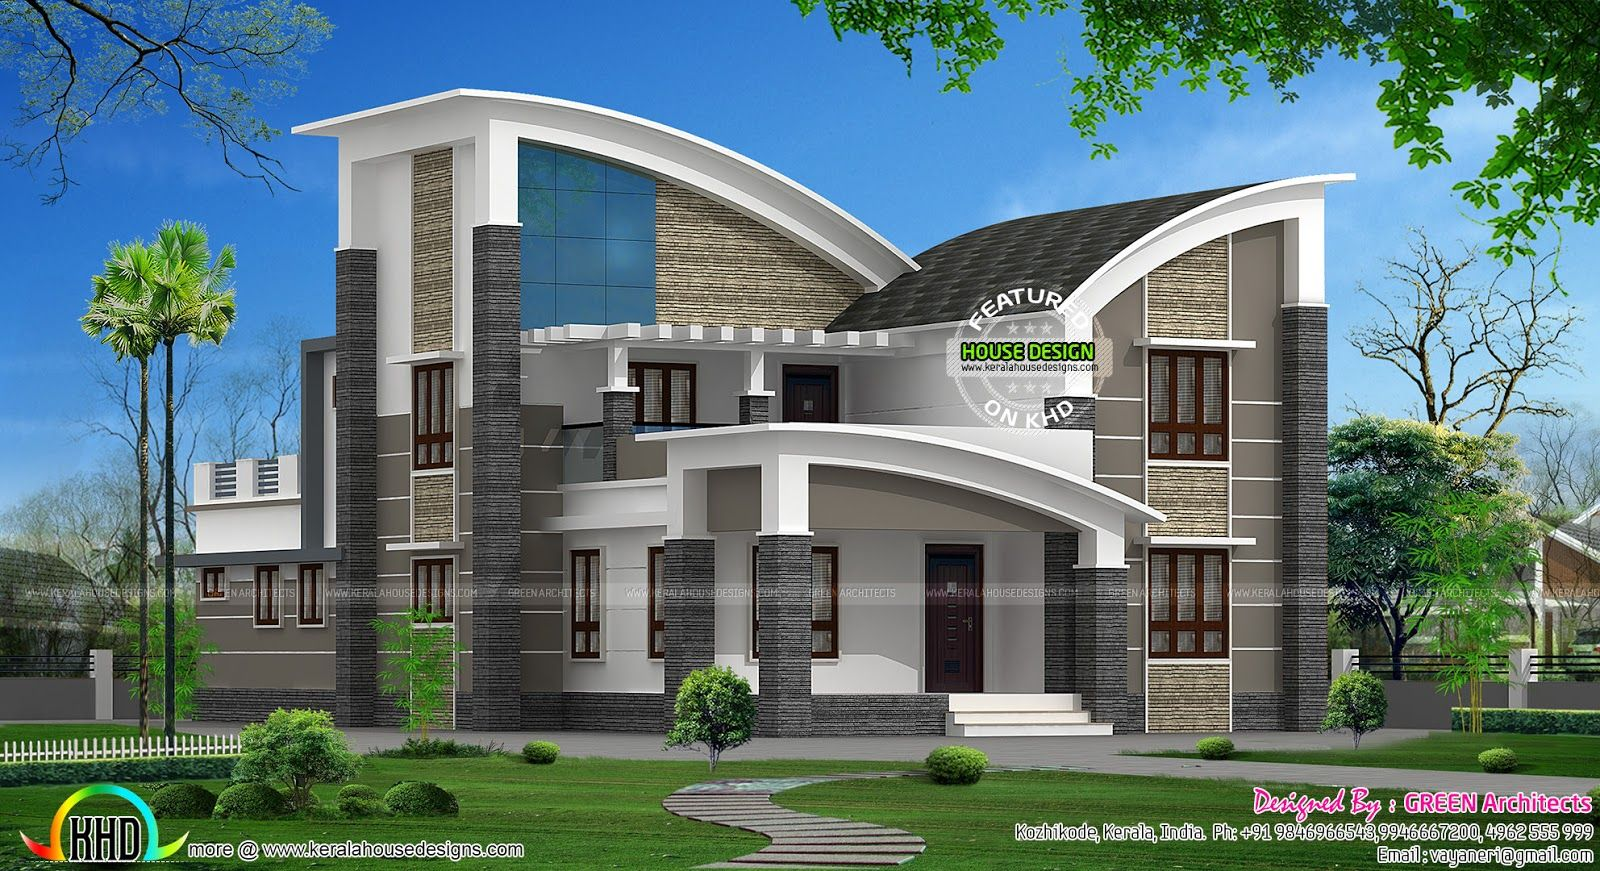 Modern style curved roof villa home inspiration for Villa architecture design plans